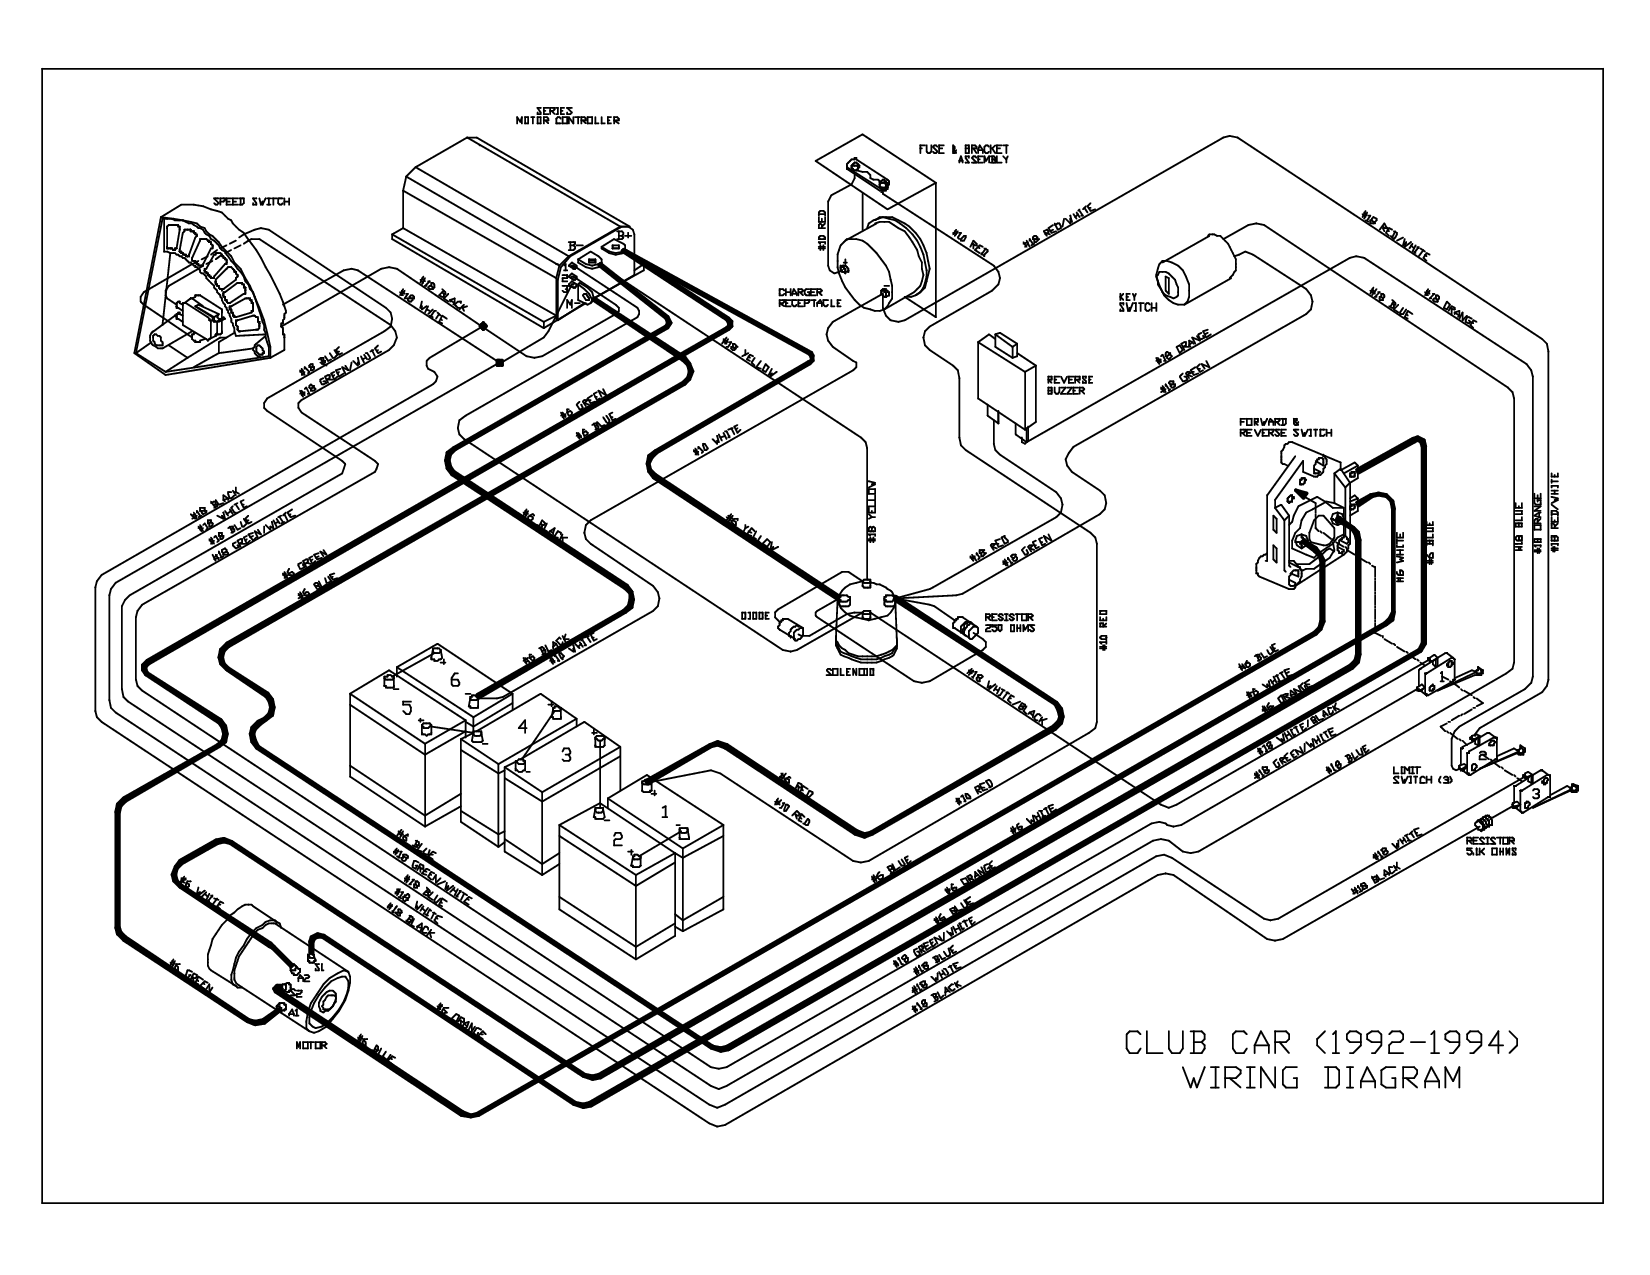 1995 club car wiring diagram | club car (1992-1994) wiring diagram | club  car golf cart, ezgo golf cart, electric golf cart  pinterest